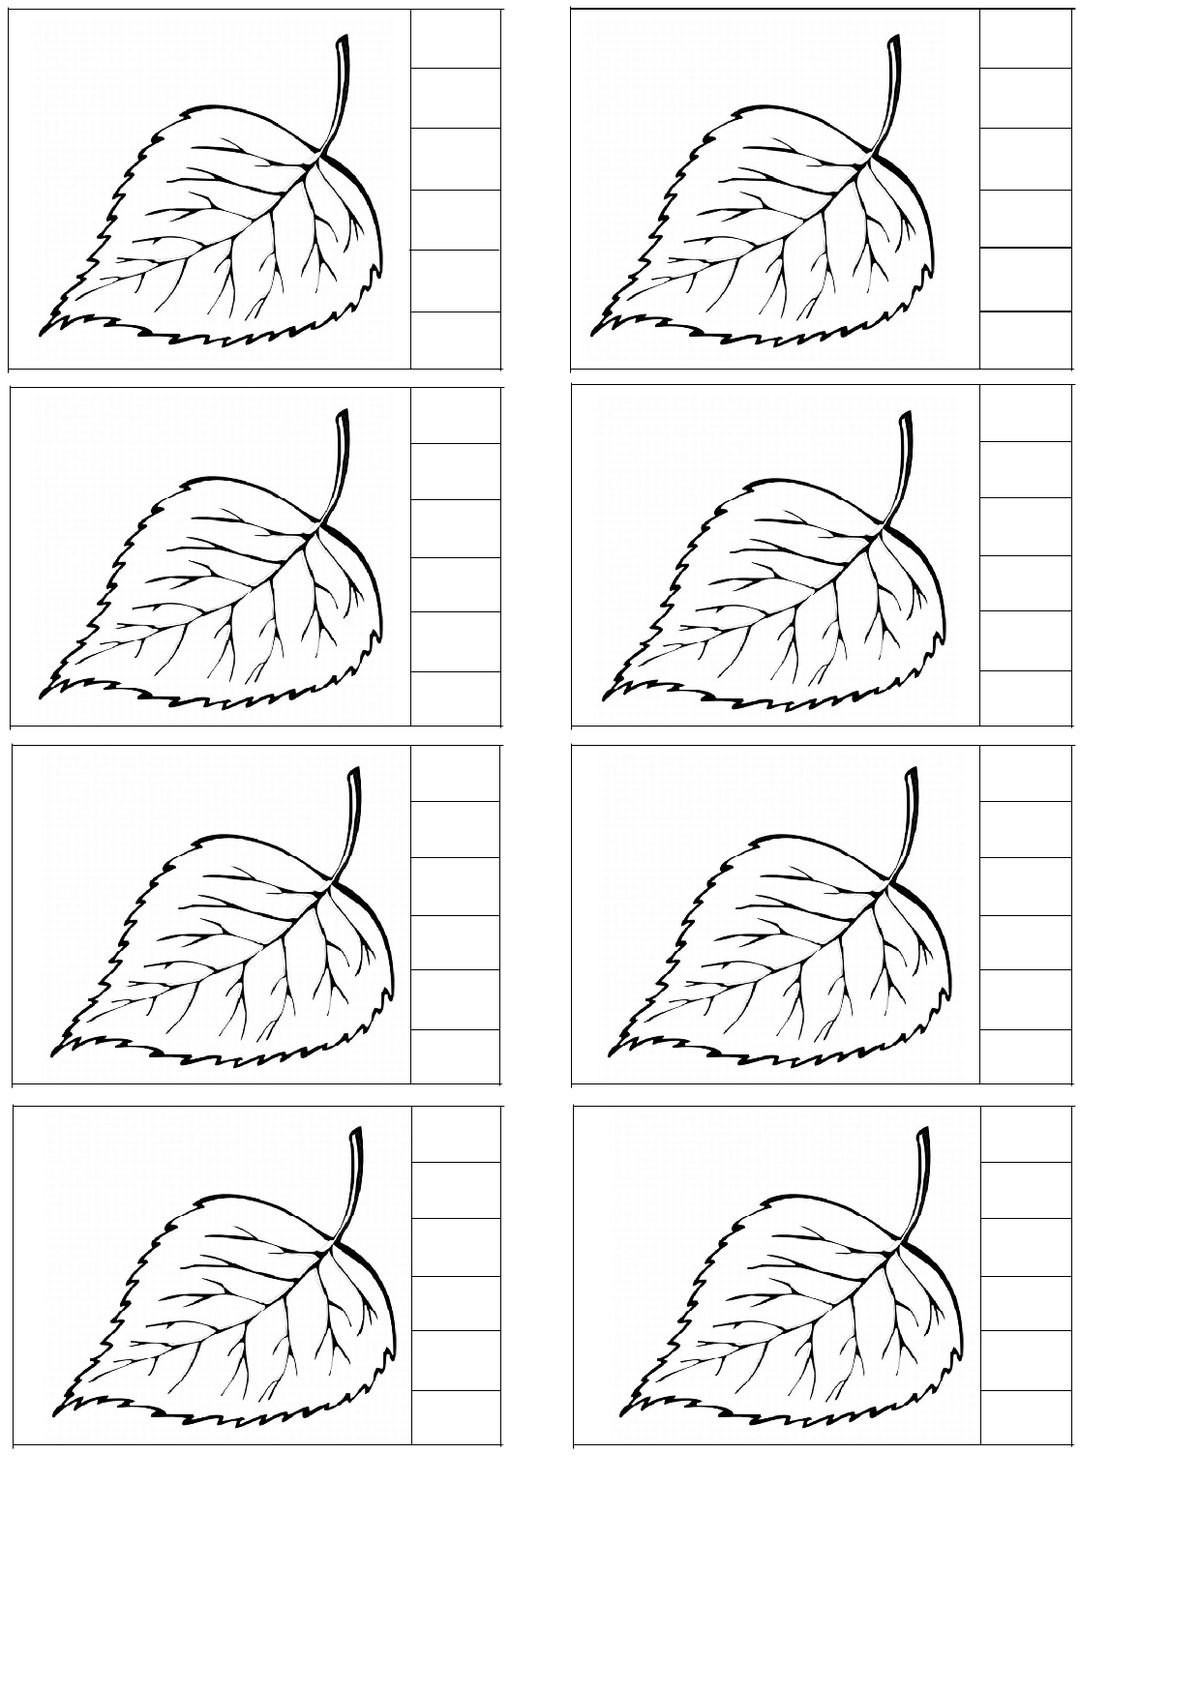 coloring with crayons techniques free printable crayon template first day art pinterest crayons coloring with techniques